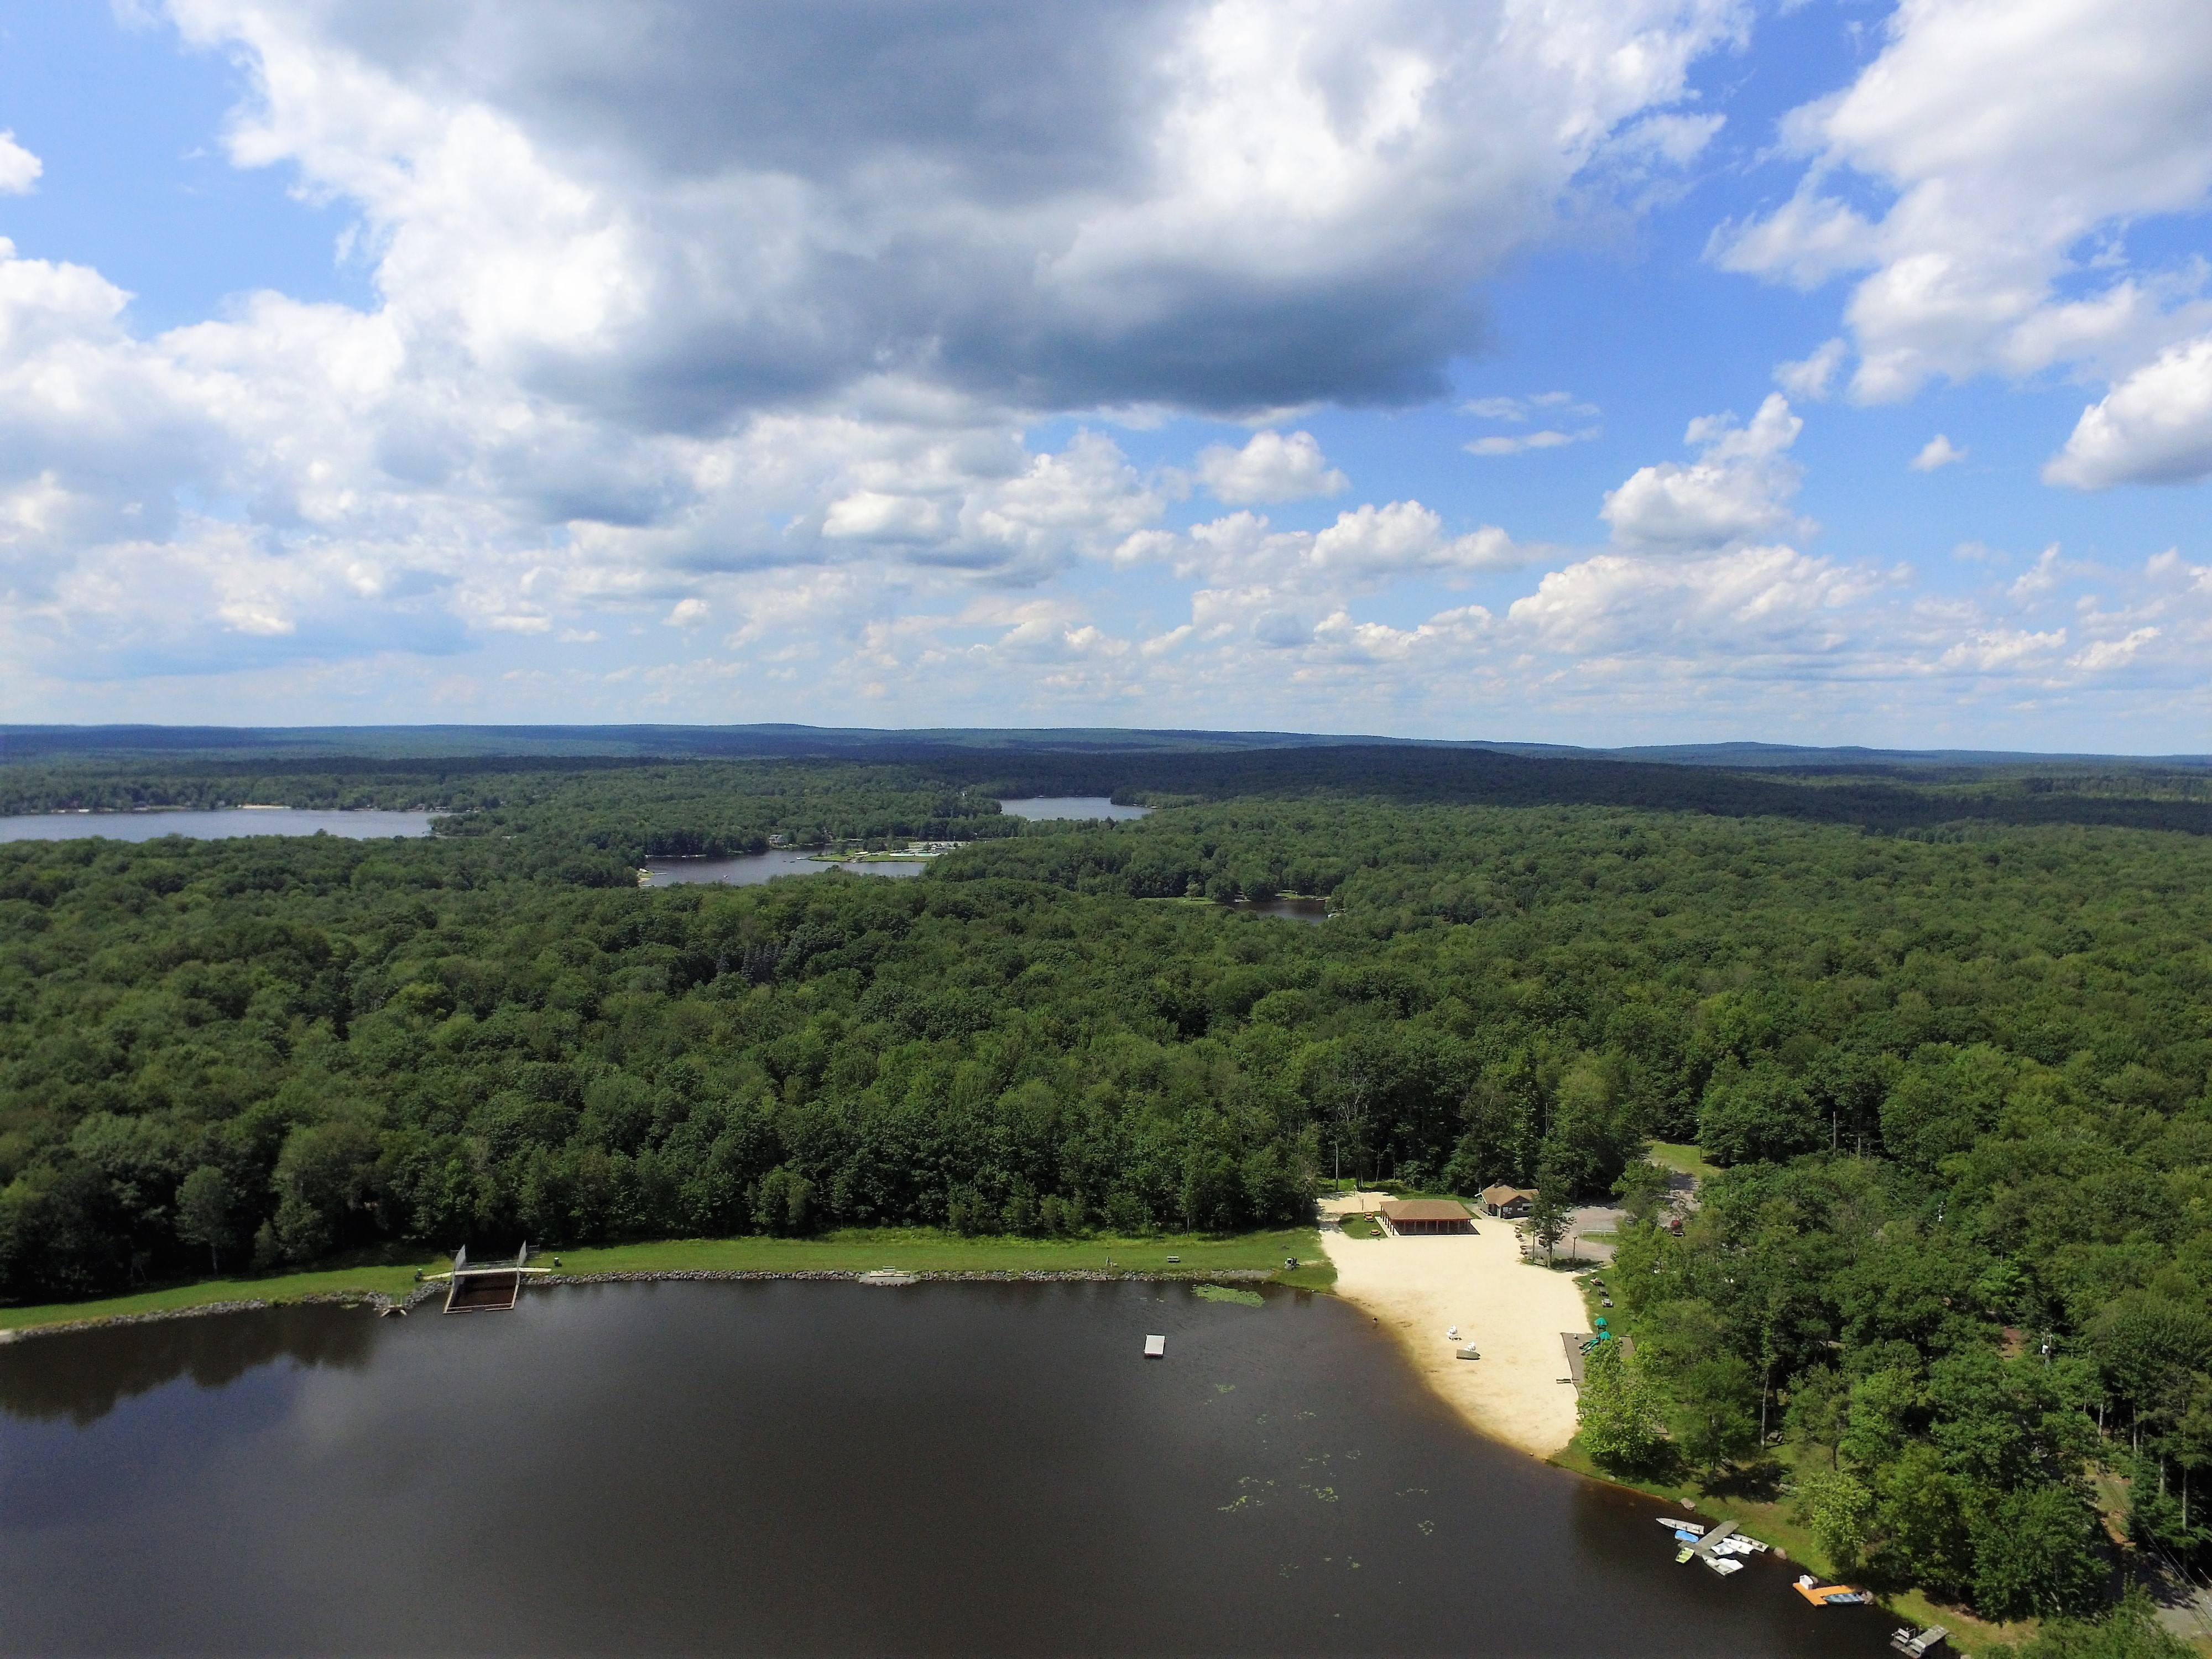 Flying over locust lake in pocono lake pa living pocono the pocono drone was a stranger to in the middle picture below you can actually see both of the lakes at arrowhead lakes beyond the trees there publicscrutiny Gallery